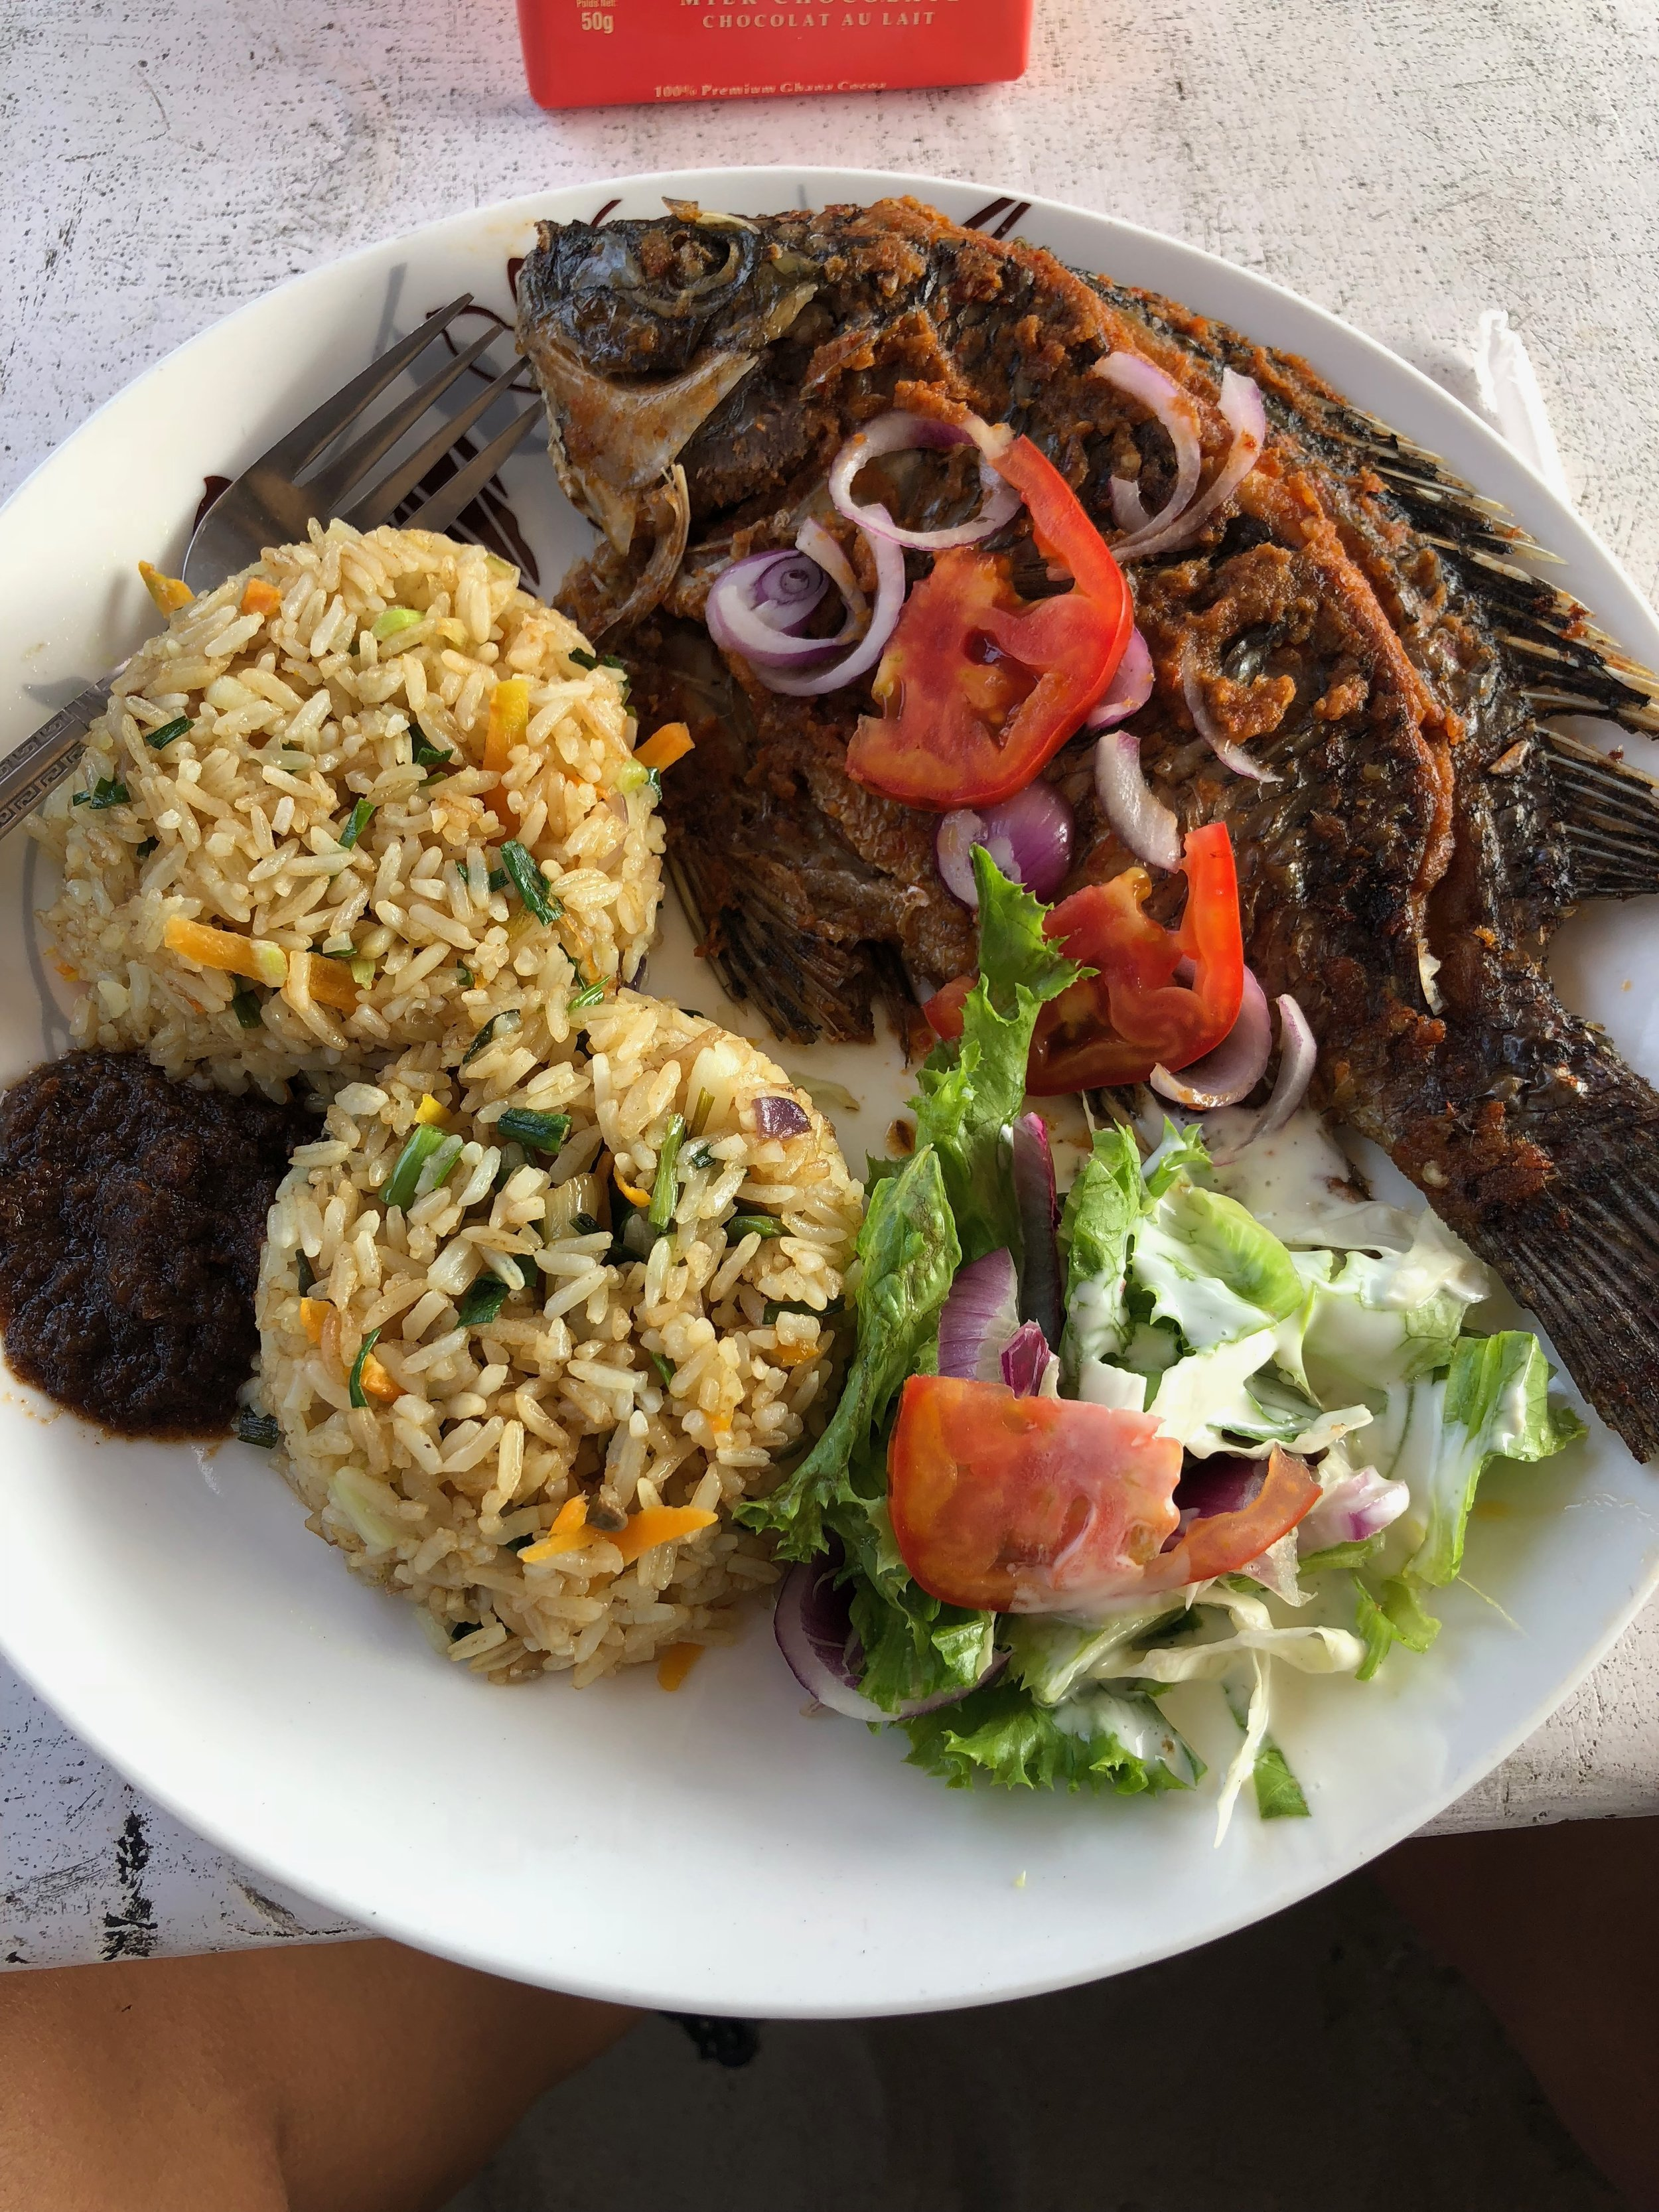 Typical Ghanaian meal with fish and jollof rice